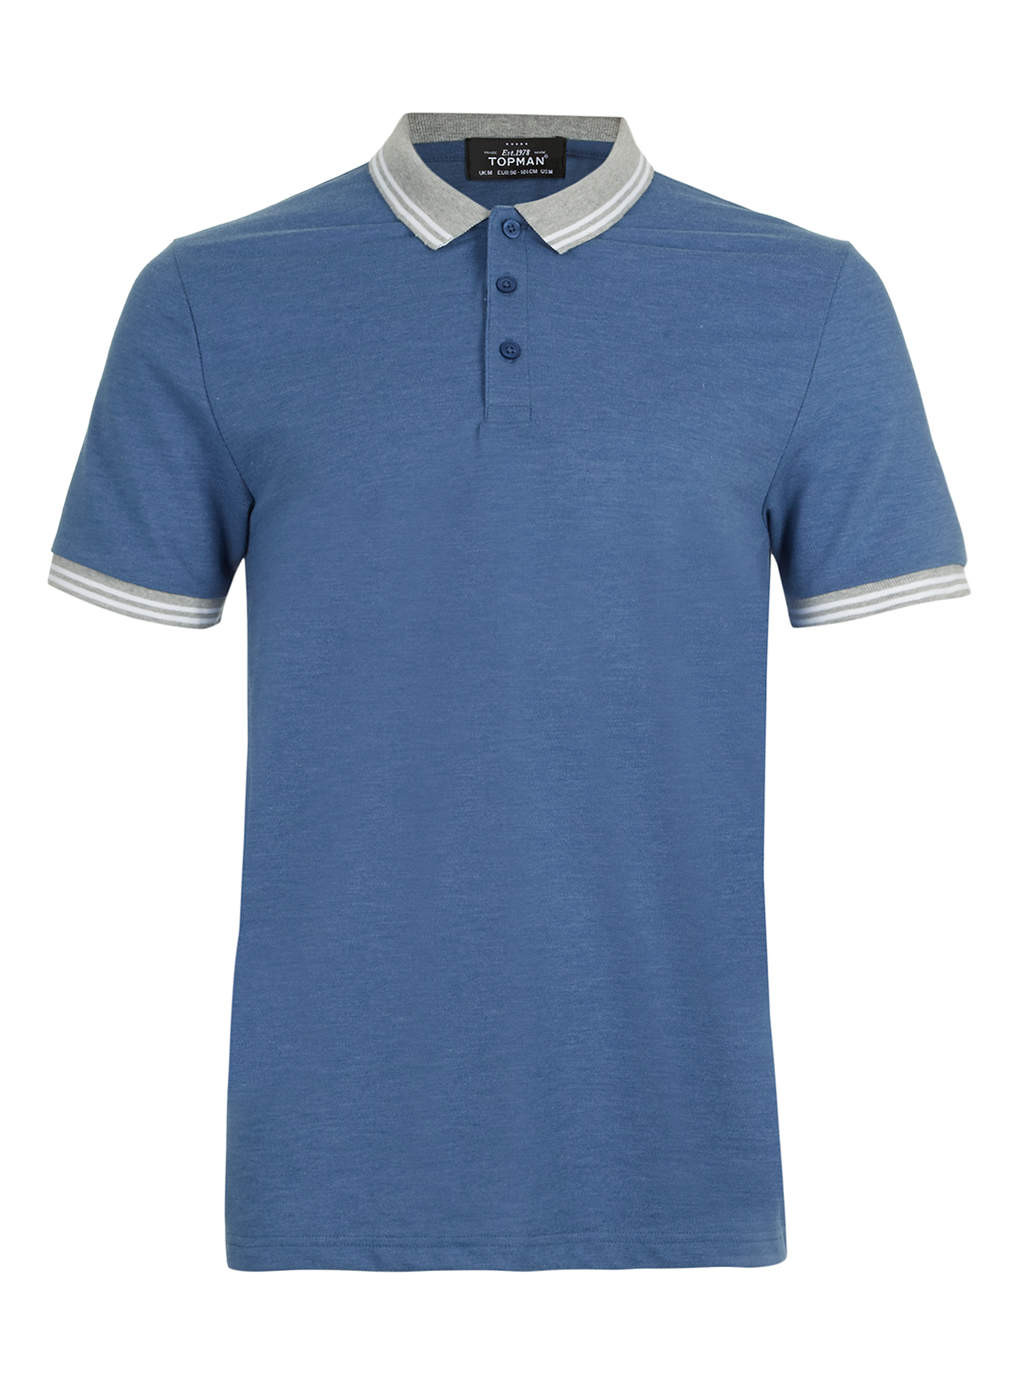 Blue Polo Shirt, now $25